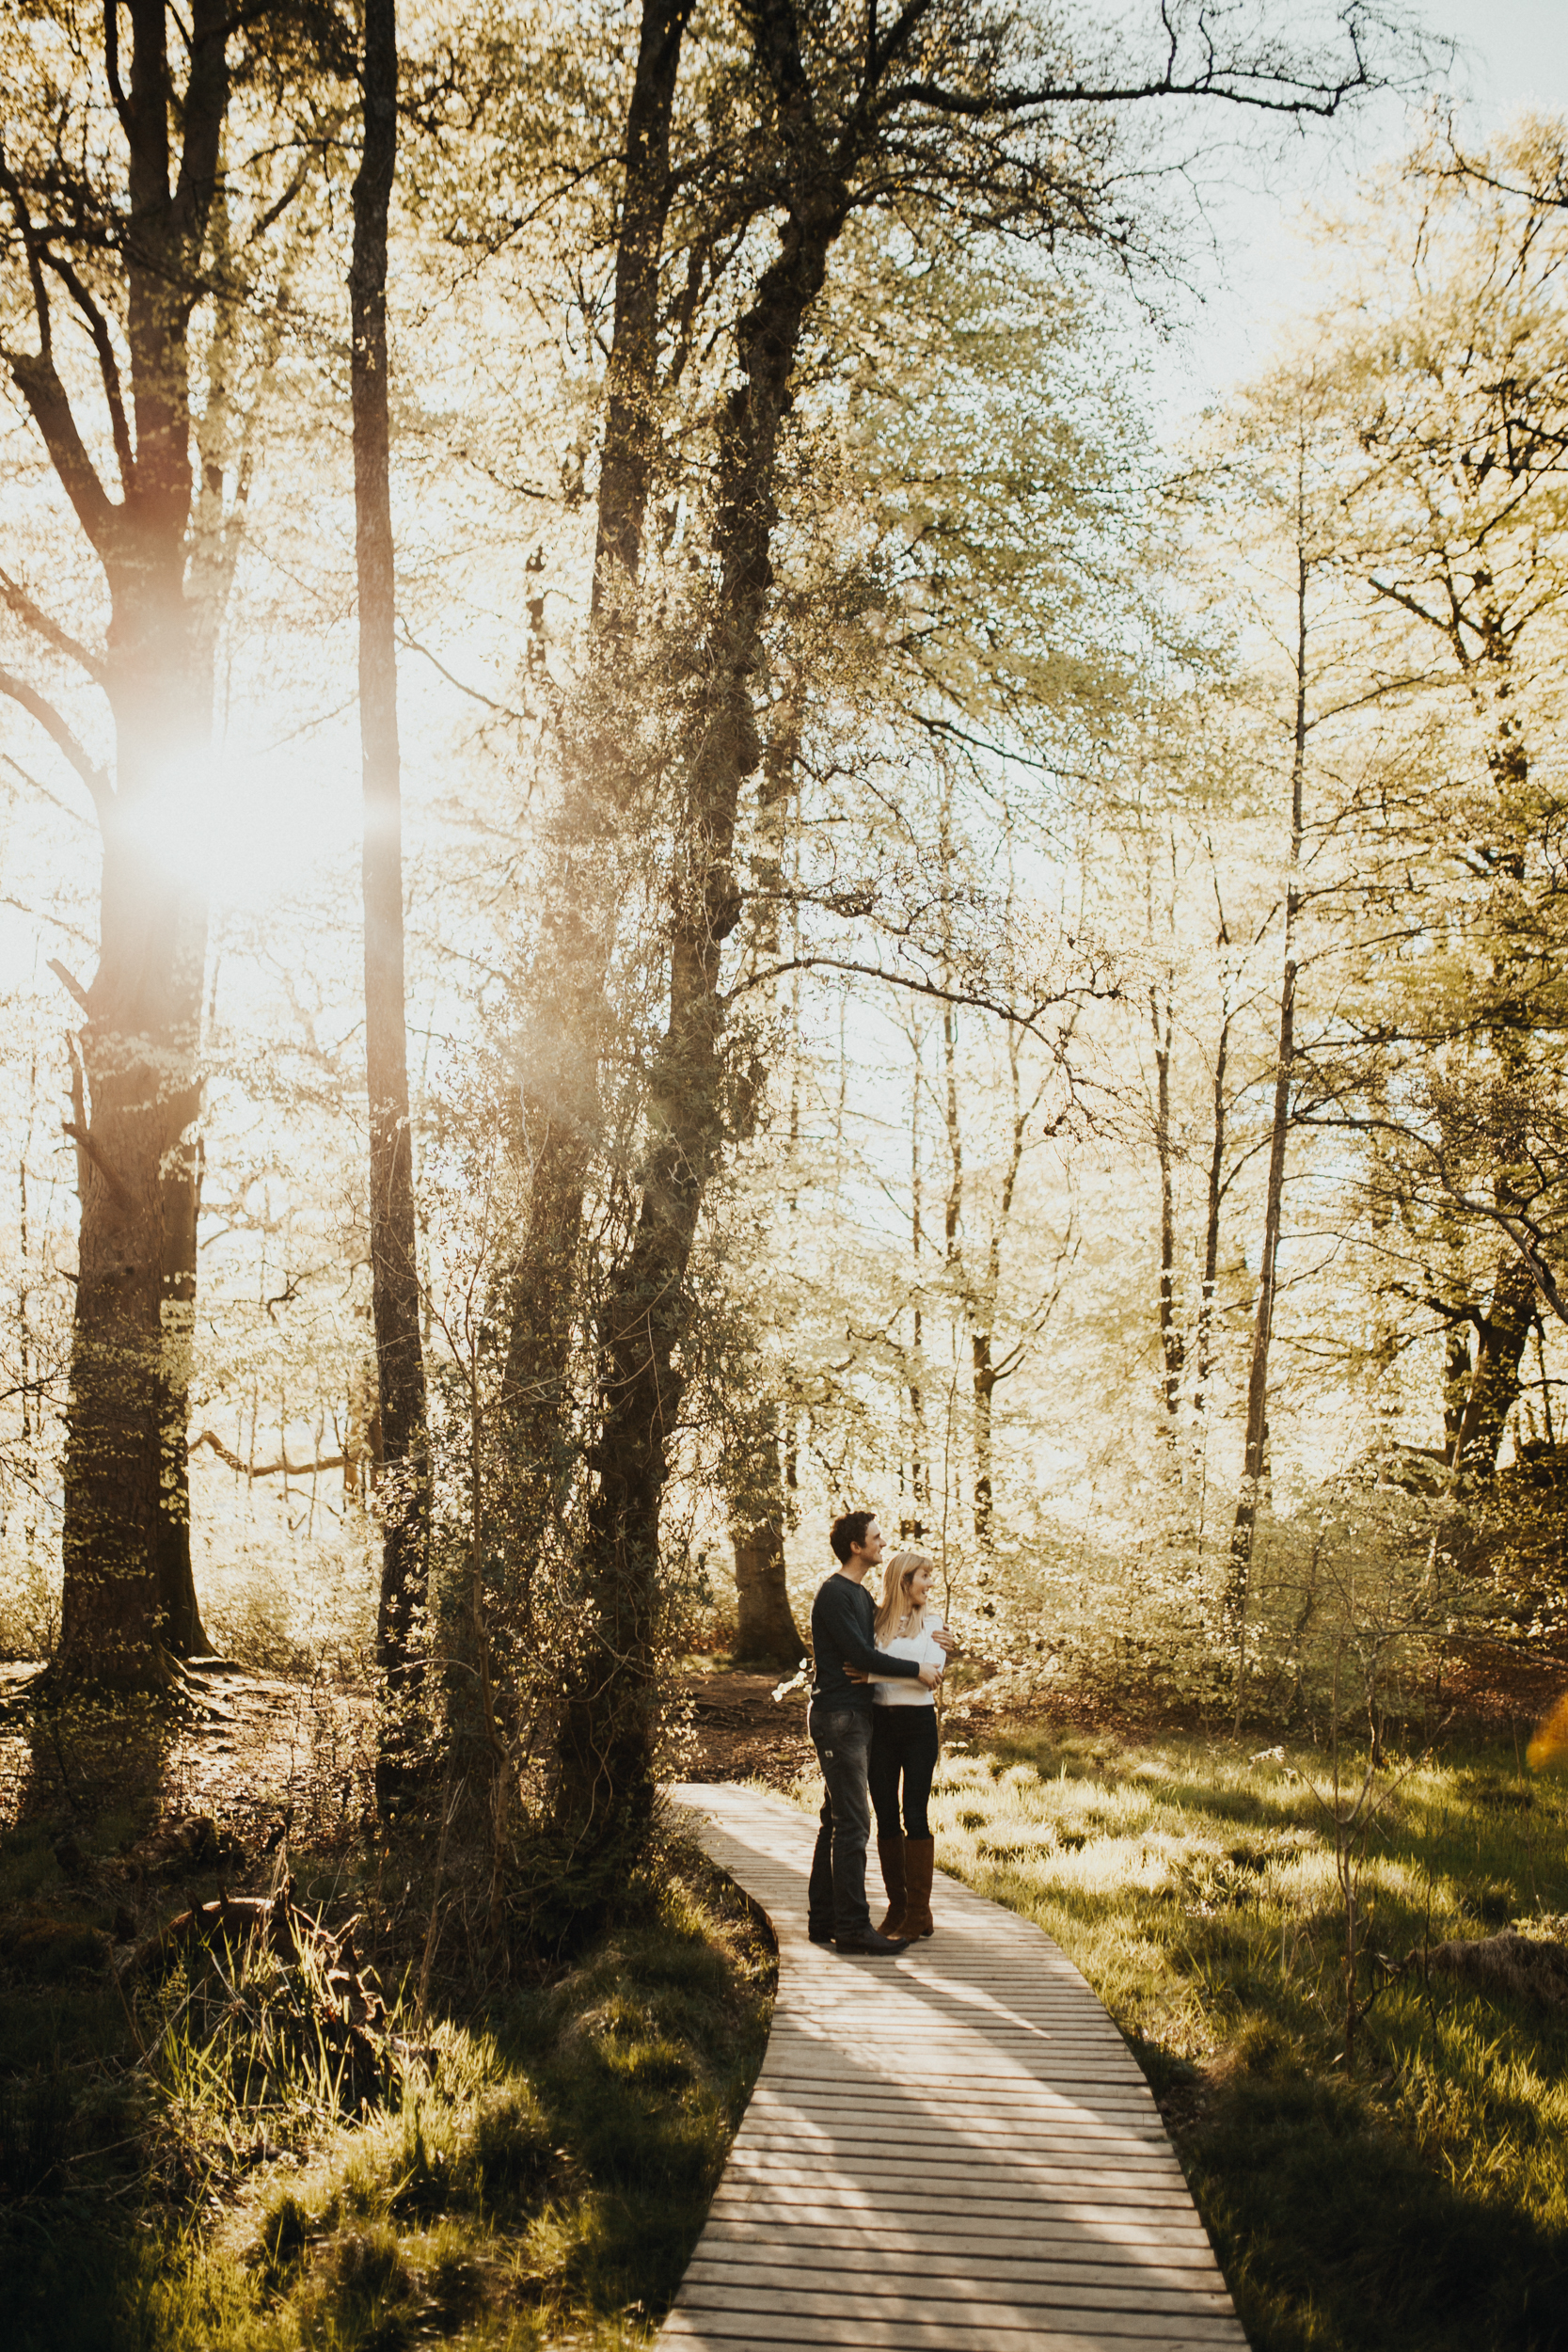 Claire-Clive-Engagement-Shoot-Lake-District-Darina-Stoda-Photography-23.jpg